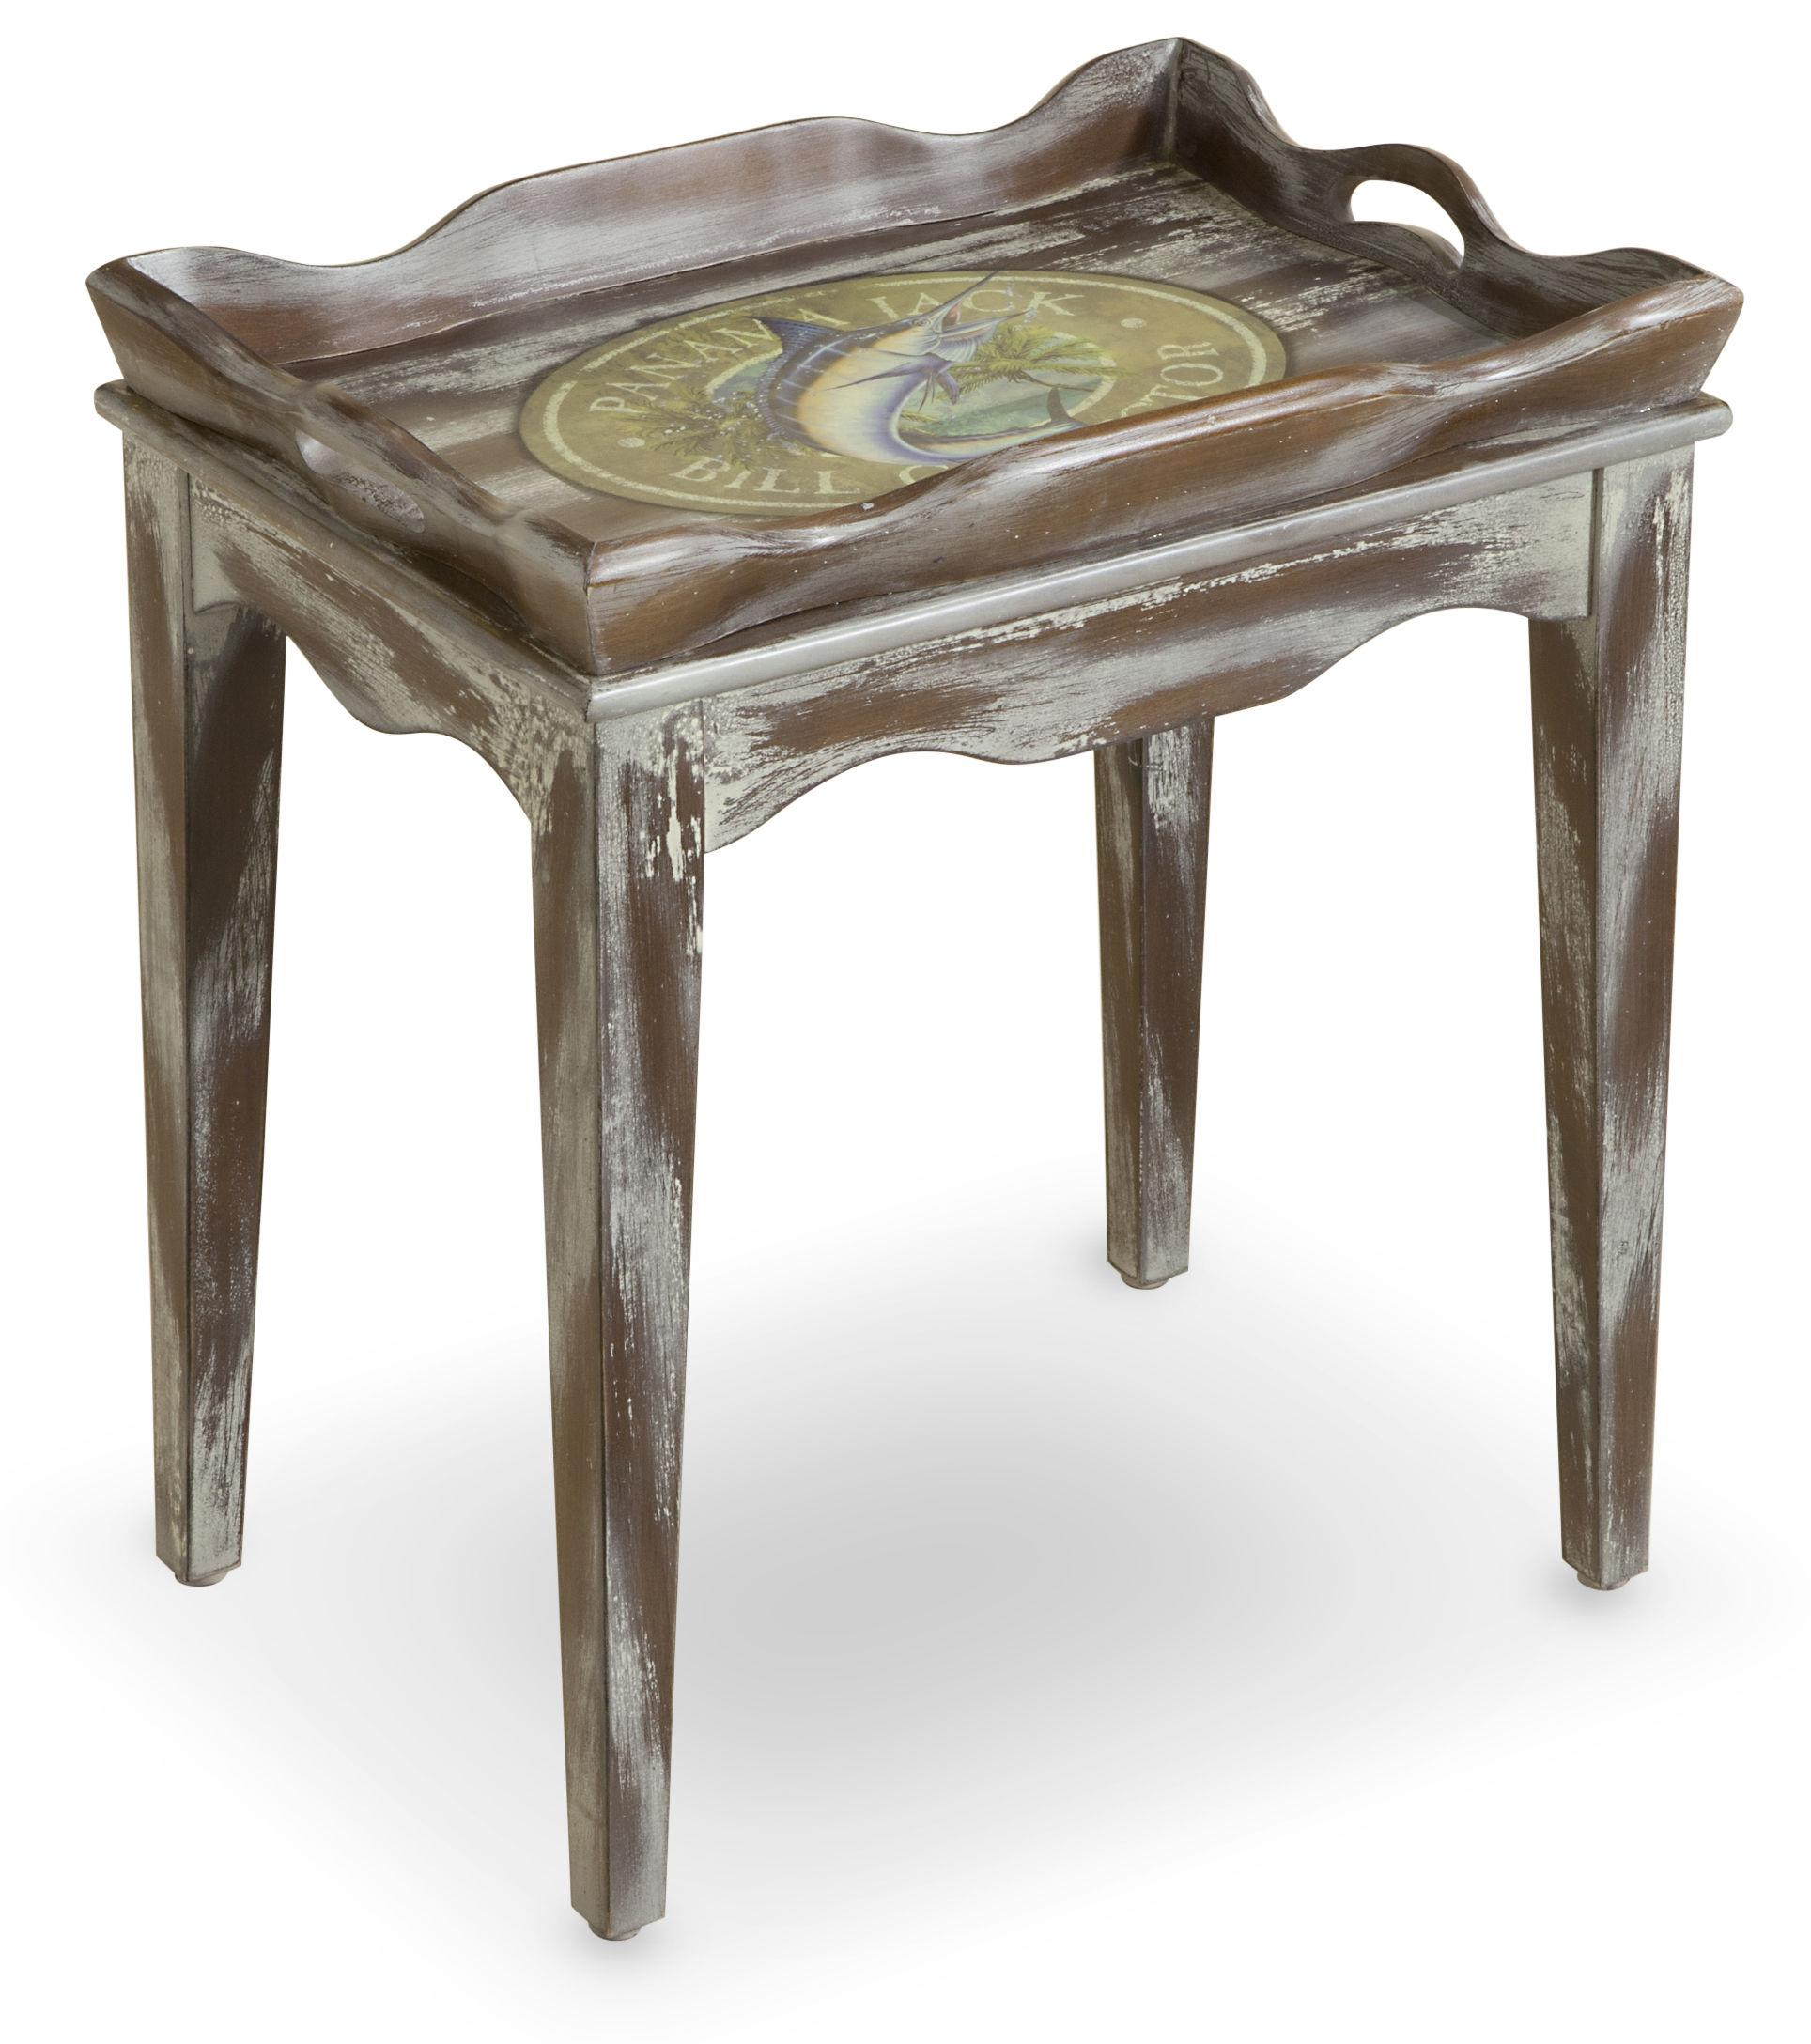 Stein World Accent Tables High Tide Tray Table - Item Number: 13313